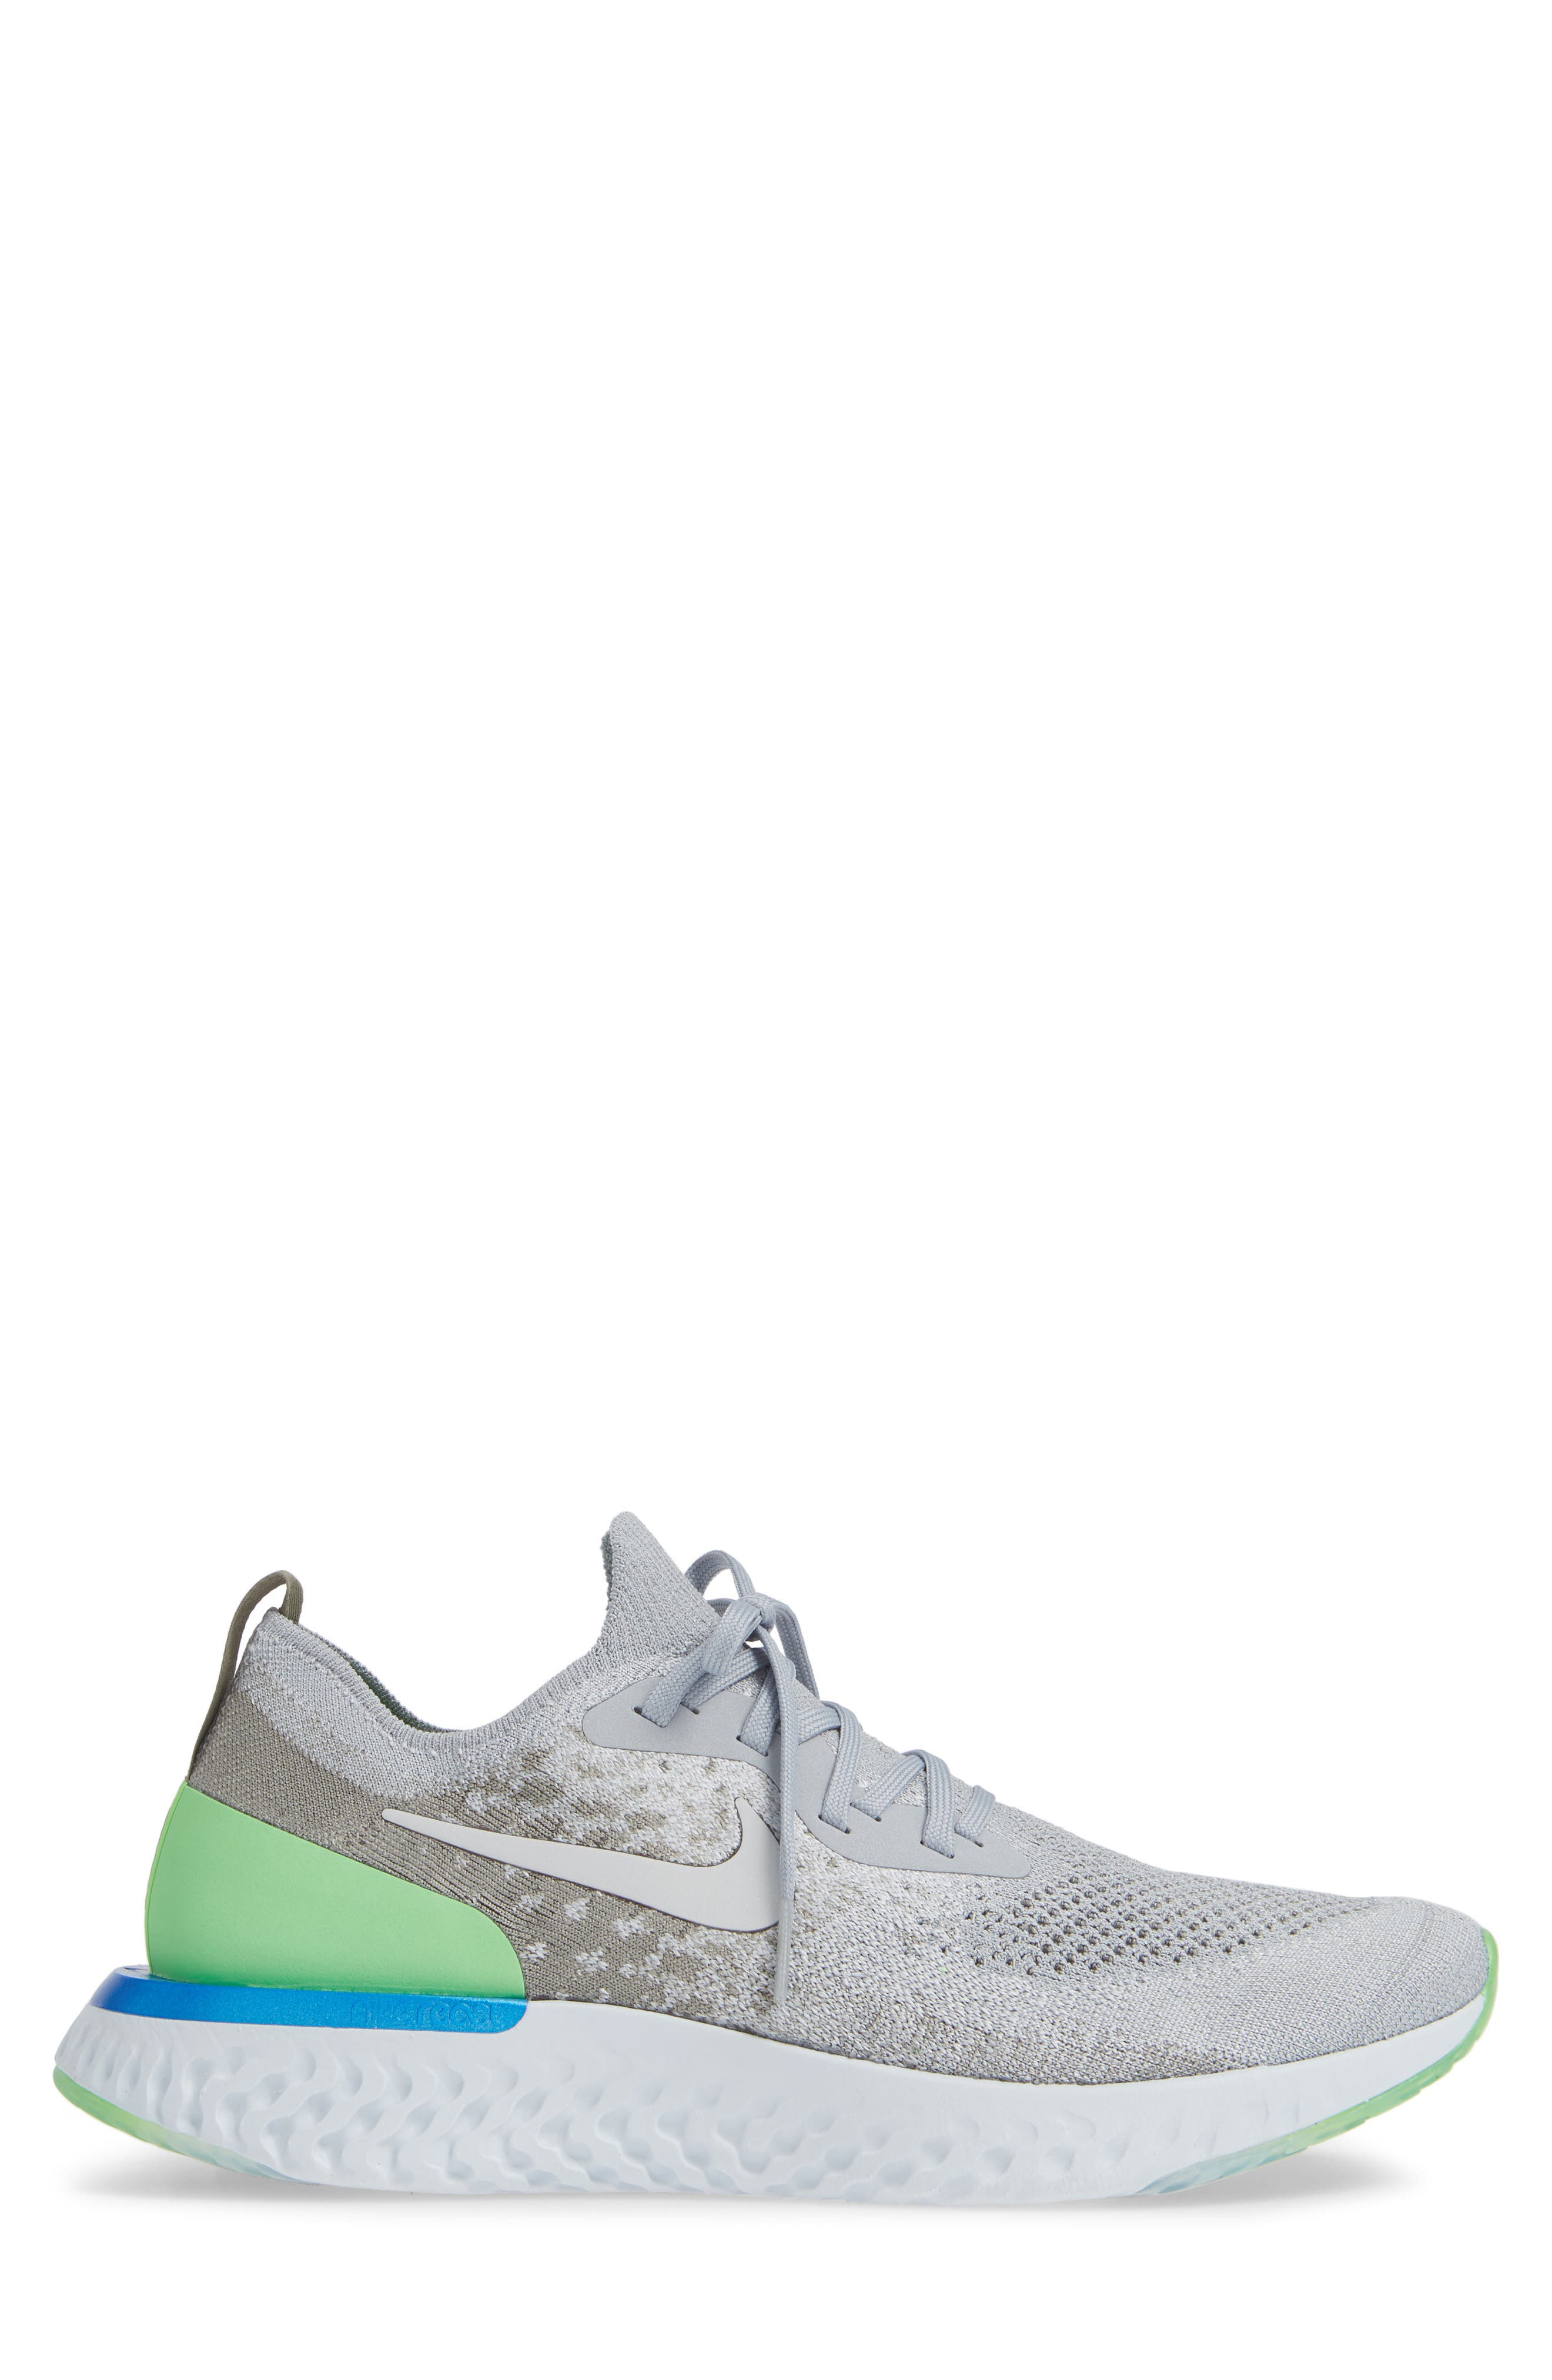 Epic React Flyknit Running Shoe,                             Alternate thumbnail 3, color,                             GREY